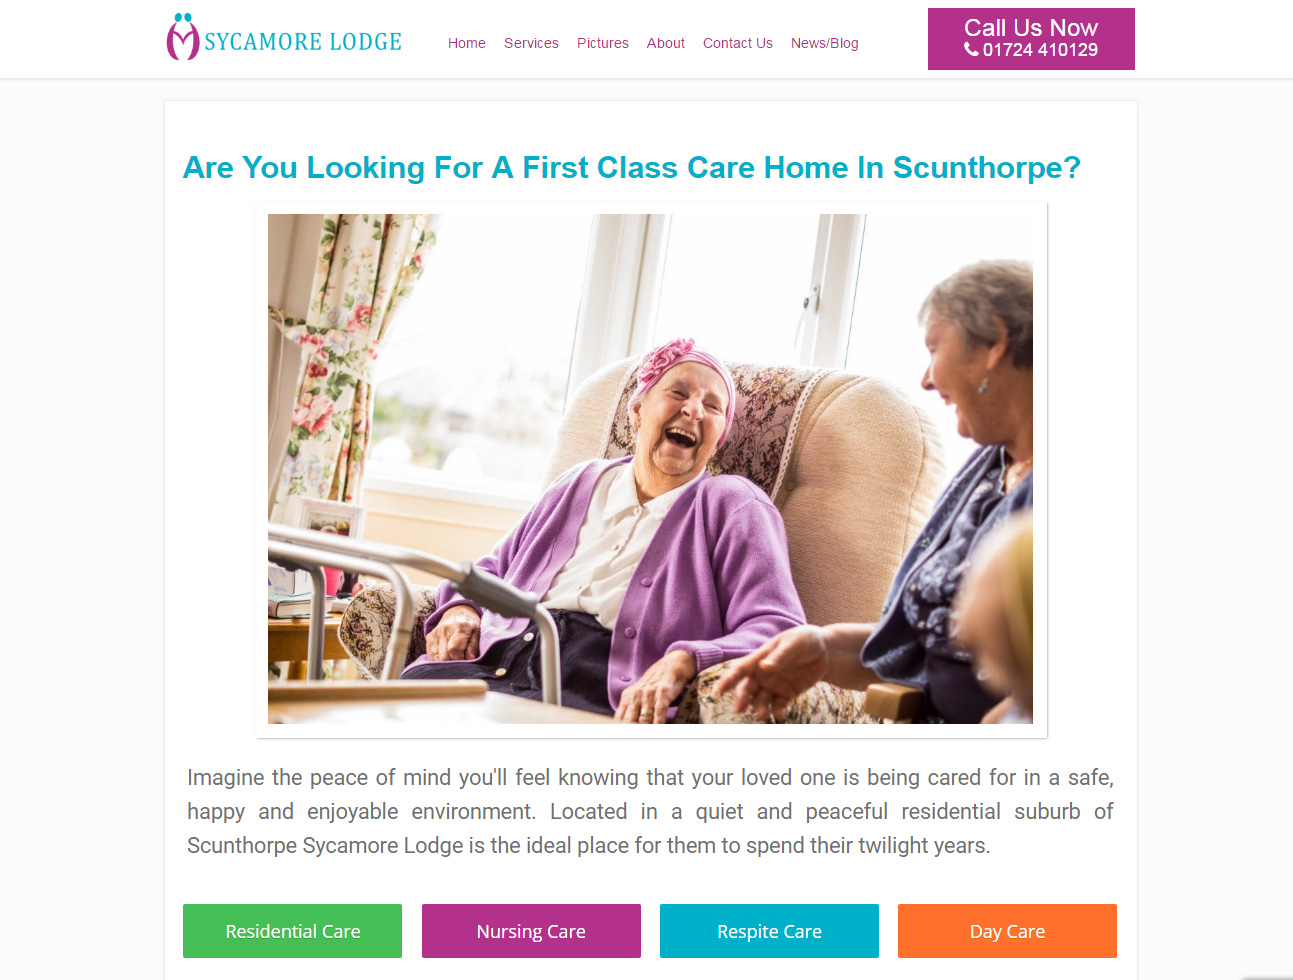 sycamore-lodge-care-home